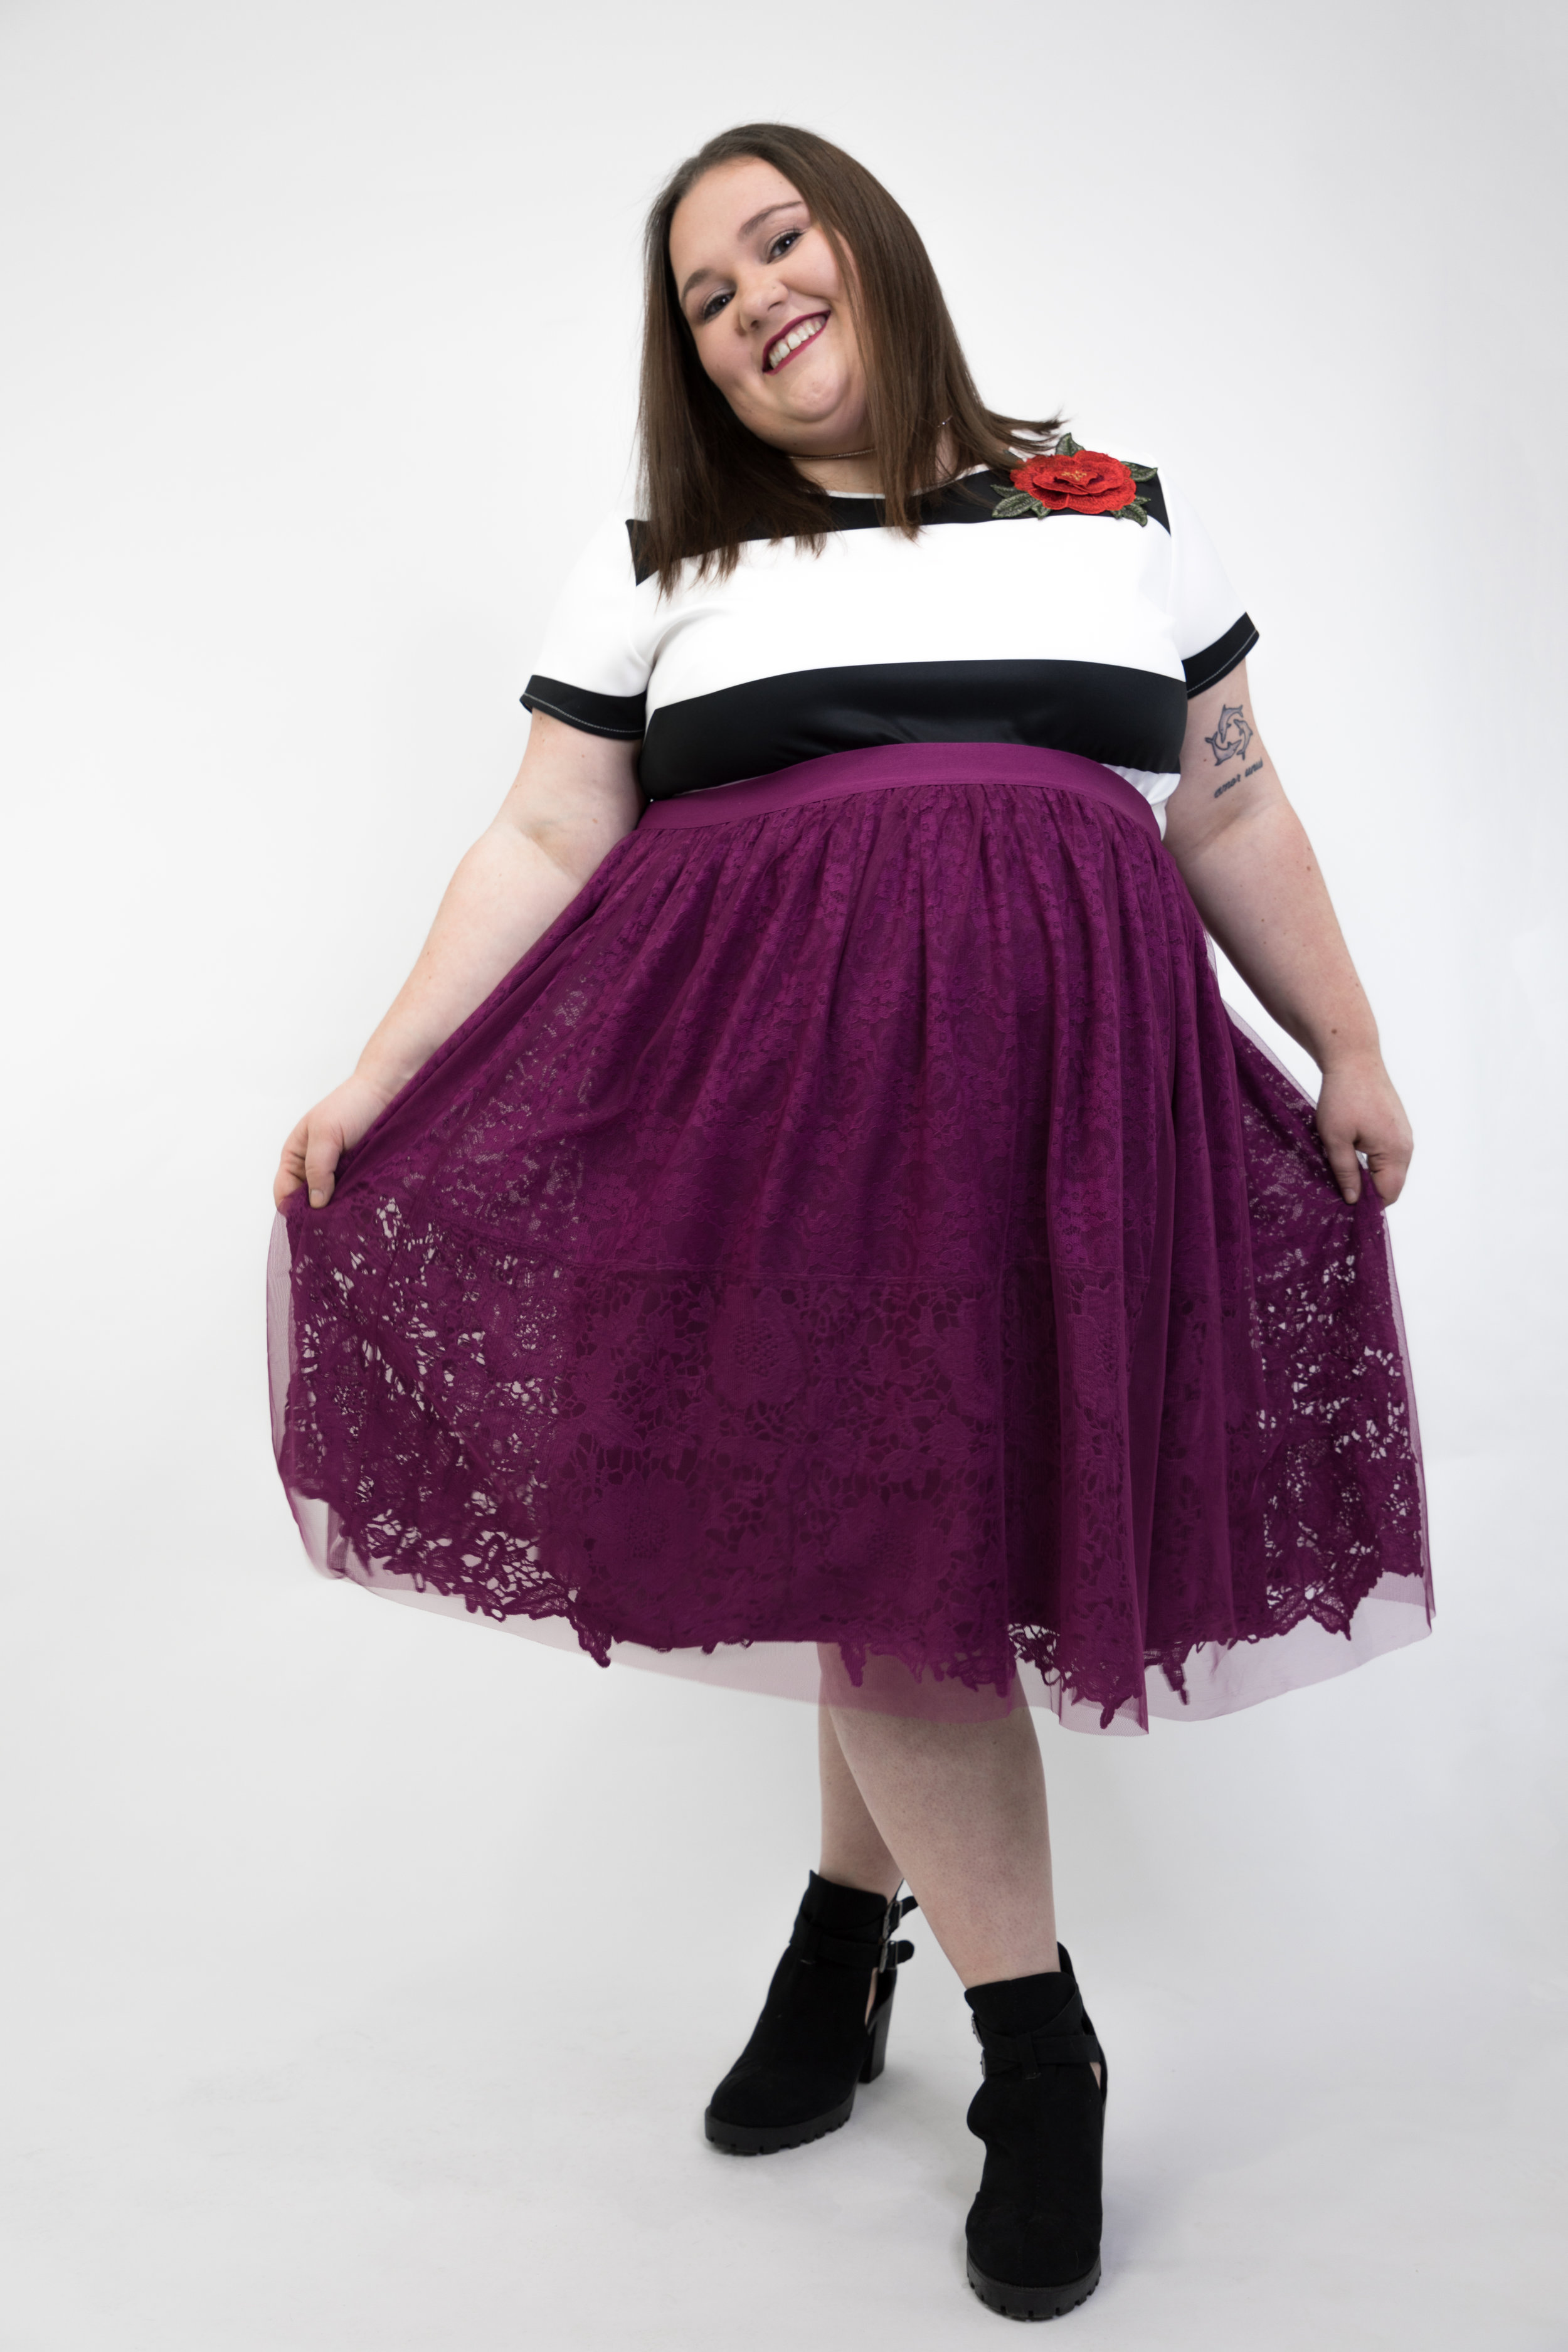 Jessica Kane Lace & Tulle Skirt - Reviewed by Kaunnor